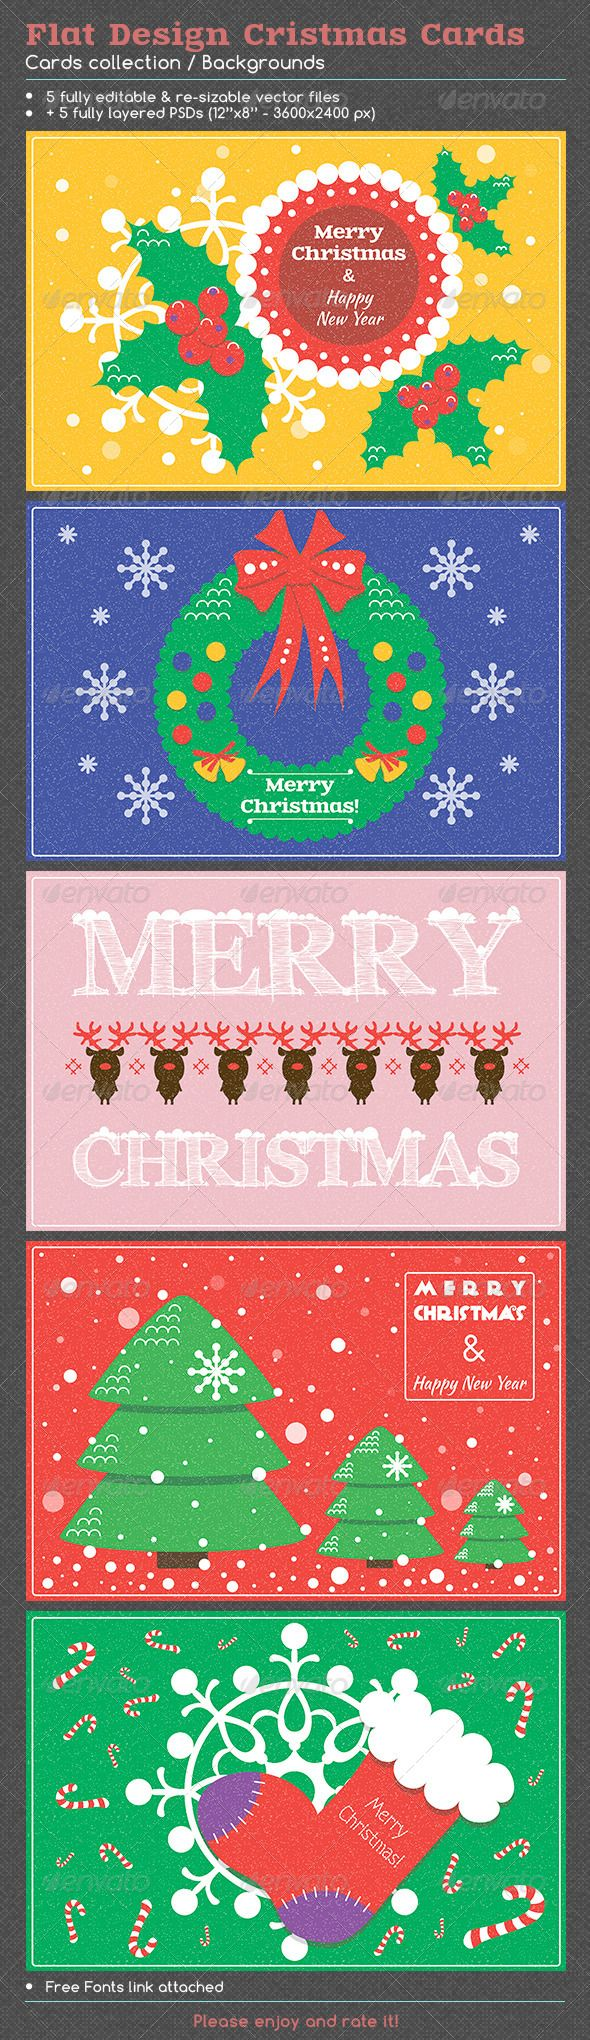 Flat Design Christmas Cards #GraphicRiver Vector set of 5 Christmas cards / Backgrounds with christmas tree, snowflakes, christmas stockings, holly, deer, wreaths, ribbons. Included files: .ai (CS6), .eps (10 version), .psd (CS6), .jpeg (3600×2400 px) EPS, AI, PSD file separate on layers. Free fonts Link attached. .fontsquirrel / Anagram, Comfortaa, Kaushan Script, Zantroke, Arimo, FFF-Tusj Created: 27 November 13 Graphics Files Included: Photoshop PSD #JPG Image #Vector EPS #AI Illustrator…